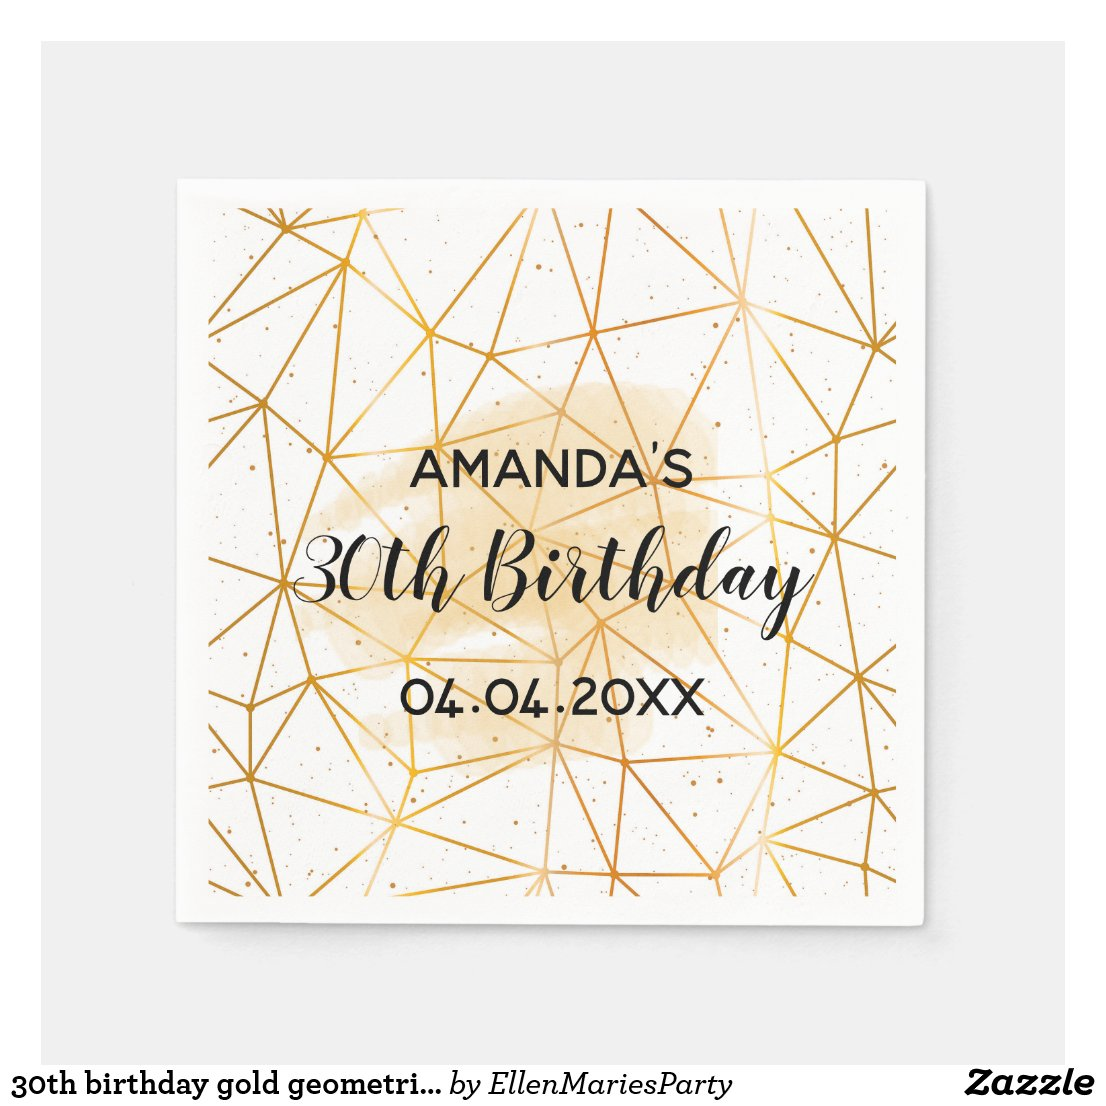 30th birthday gold geometric pattern on white disposable napkin